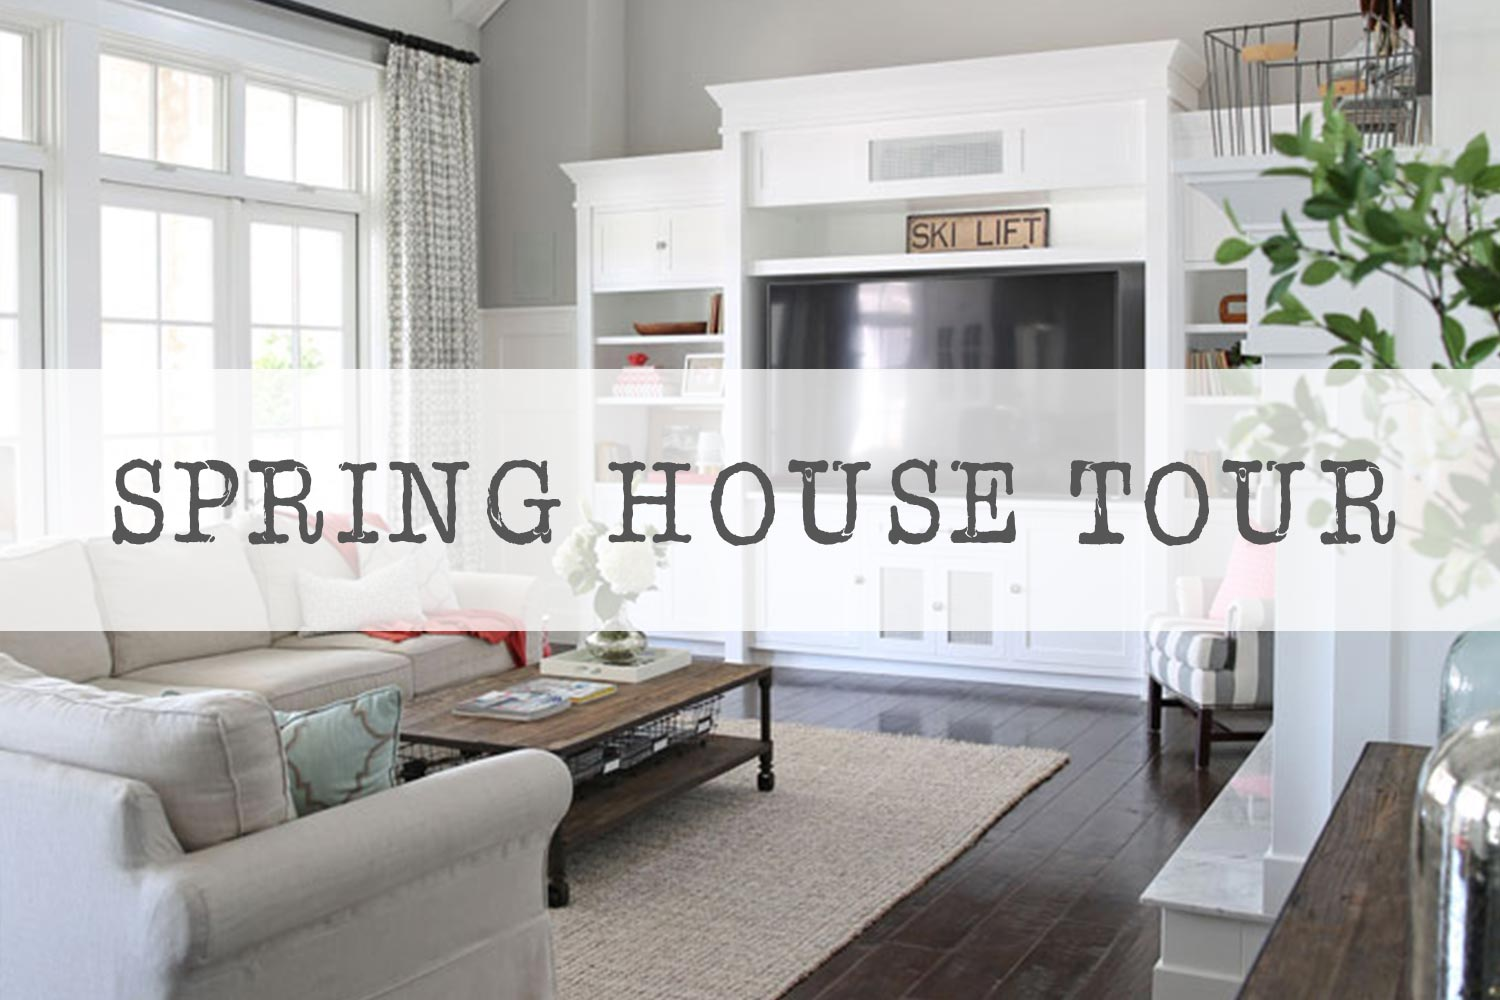 Home Tour - The Sunny Side Up Blog